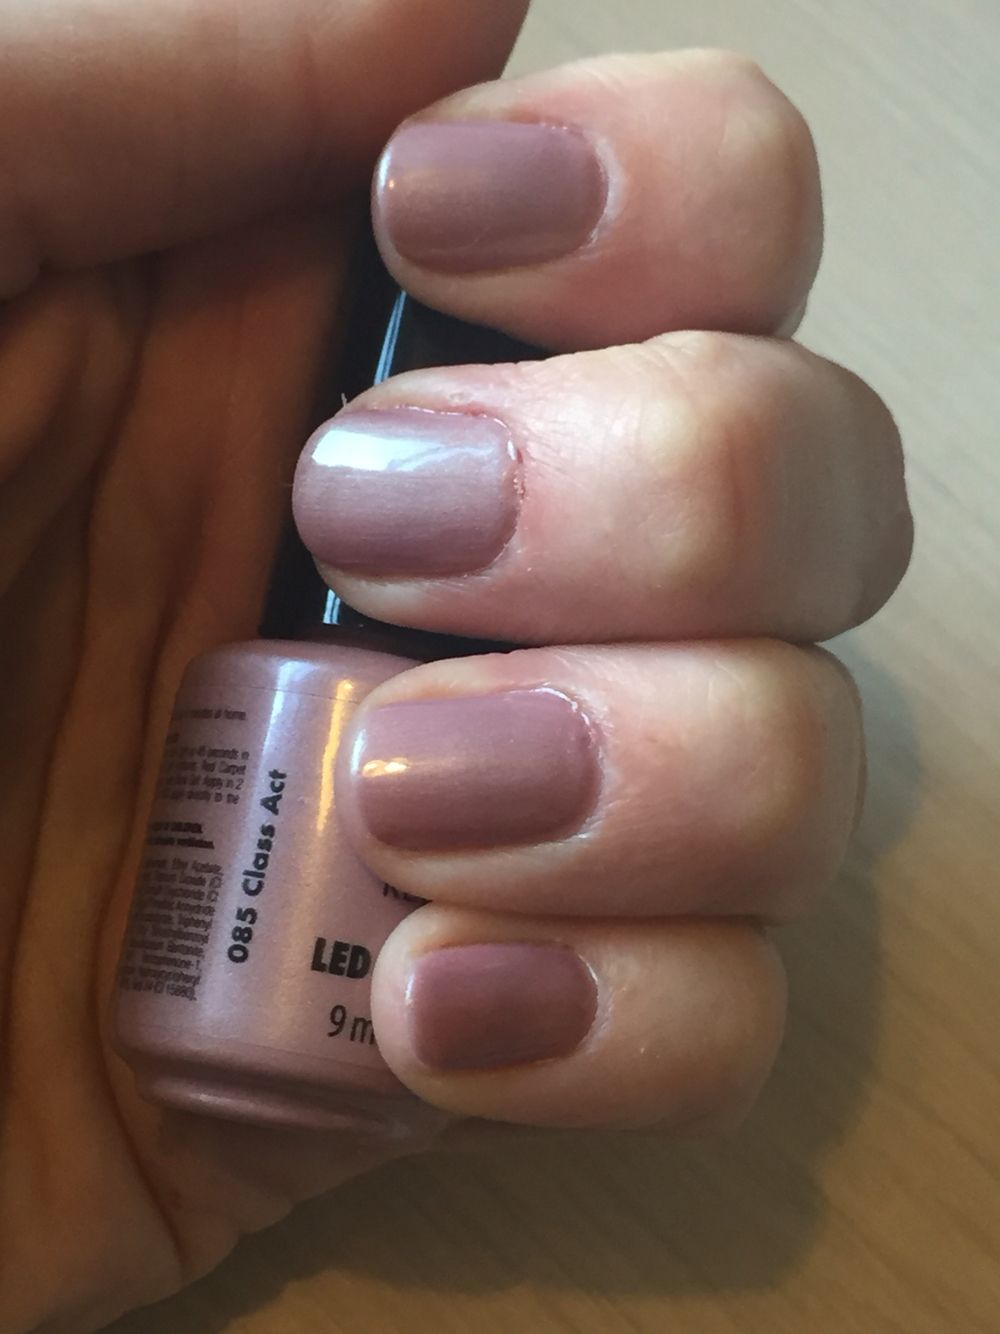 Class Act - Red Carpet Manicure - RCM Nude gel nails | Gel Polish ...